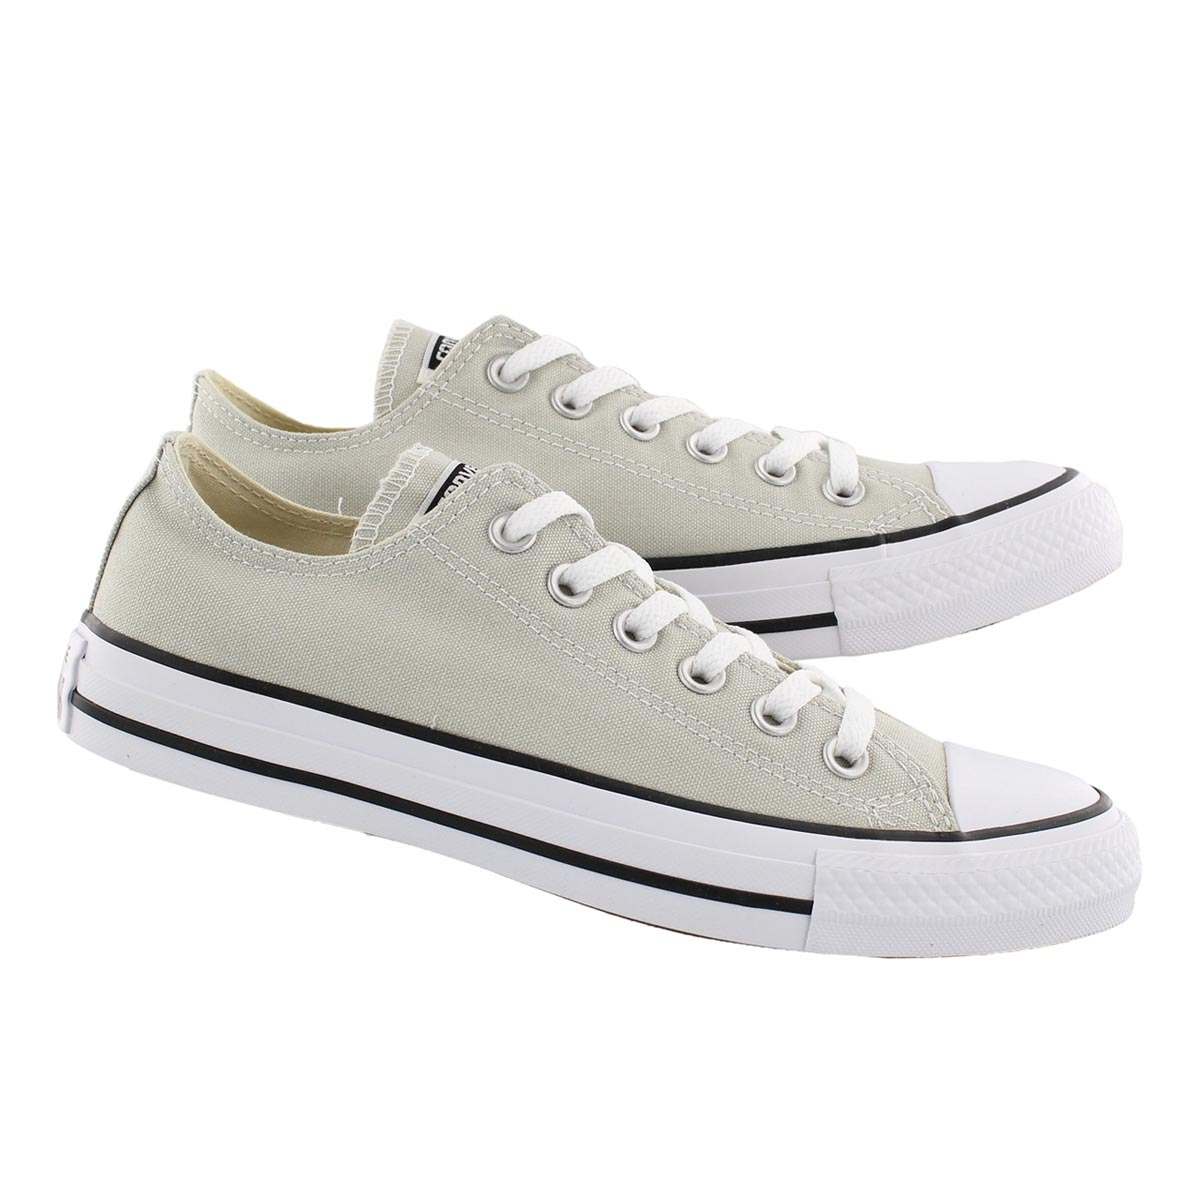 Lds CT A/S Seasonal lt surplus sneaker